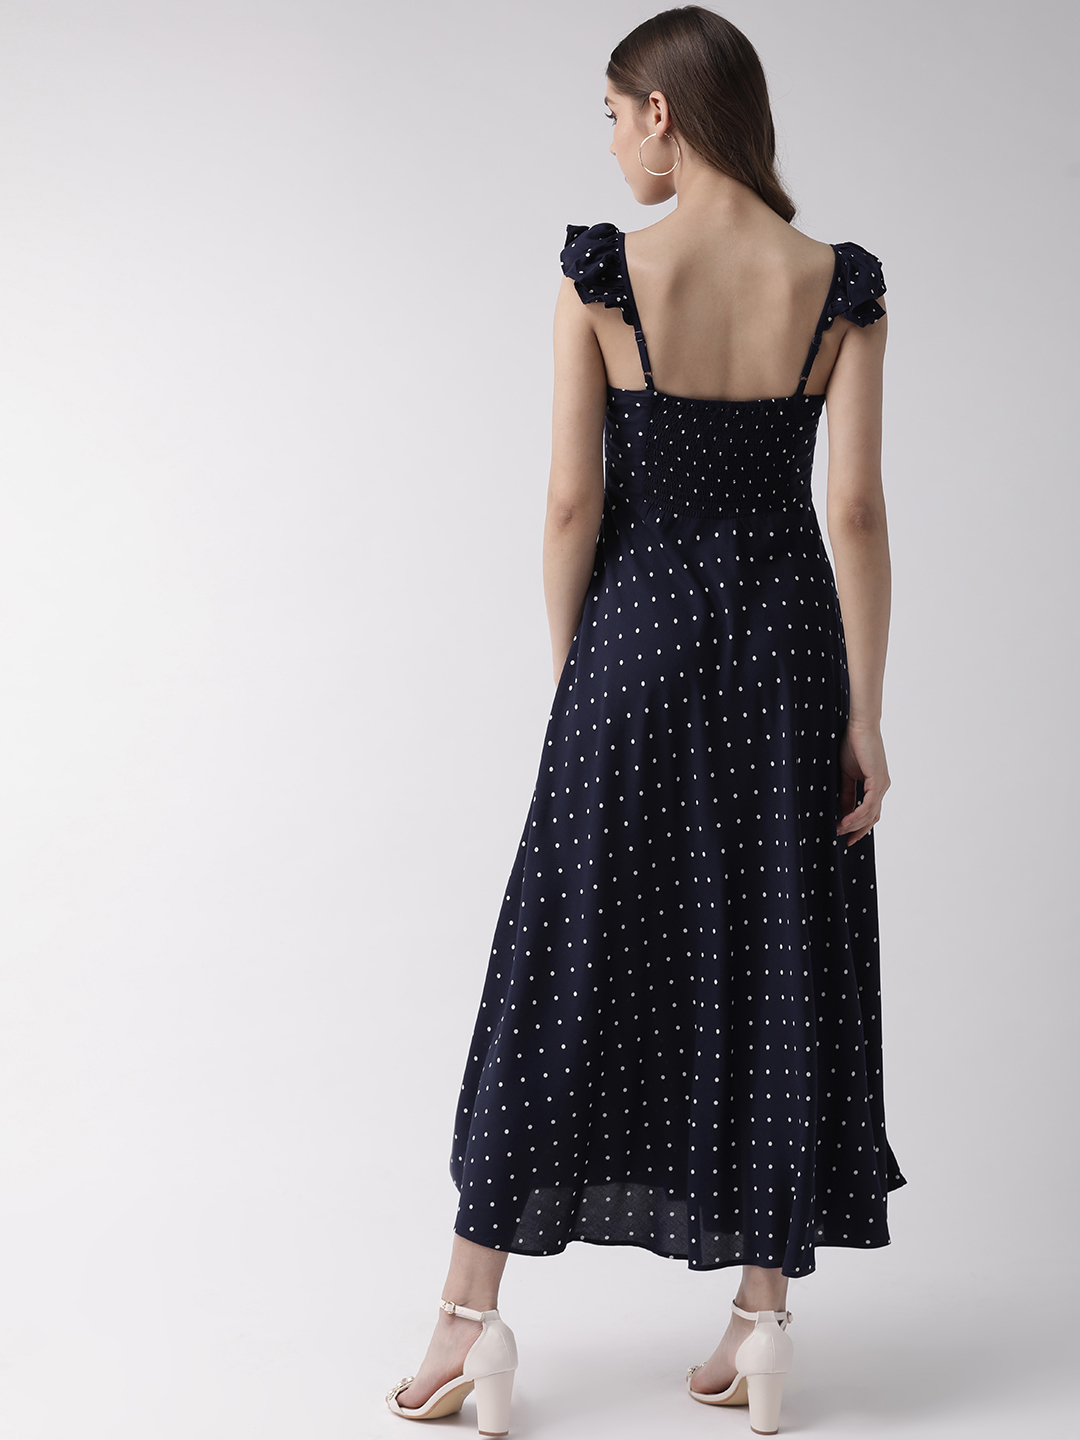 Dresses-The Polka Playful Midi Dress3